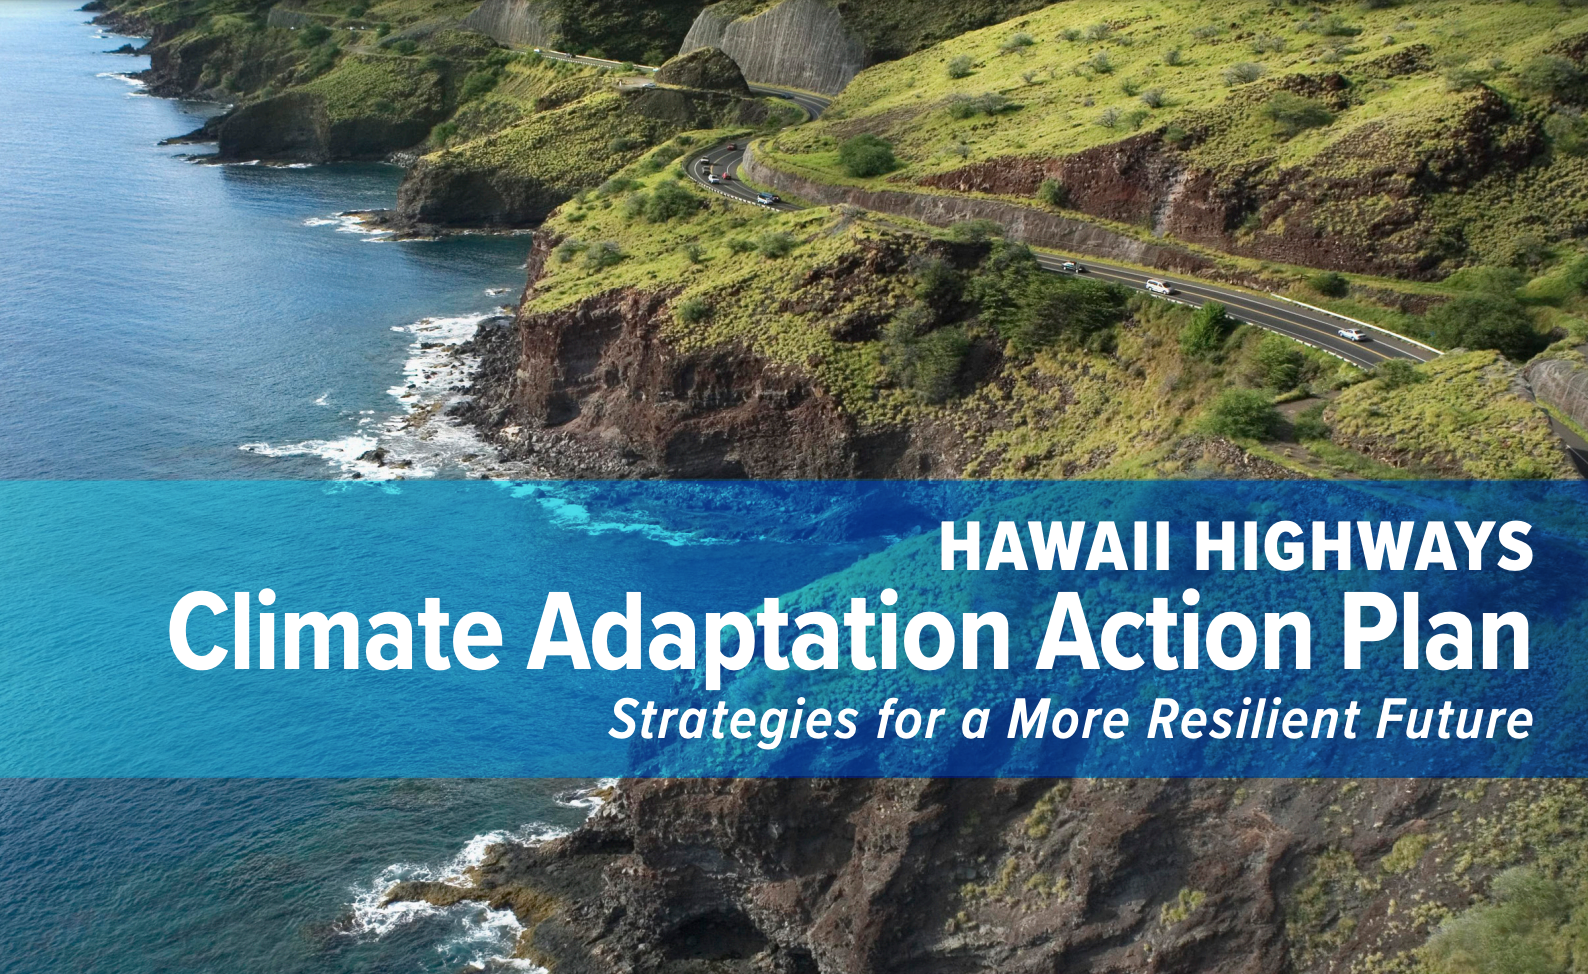 Hawaiʻi Highways Climate Adaptation Action Plan and Hazard Tool Available Online